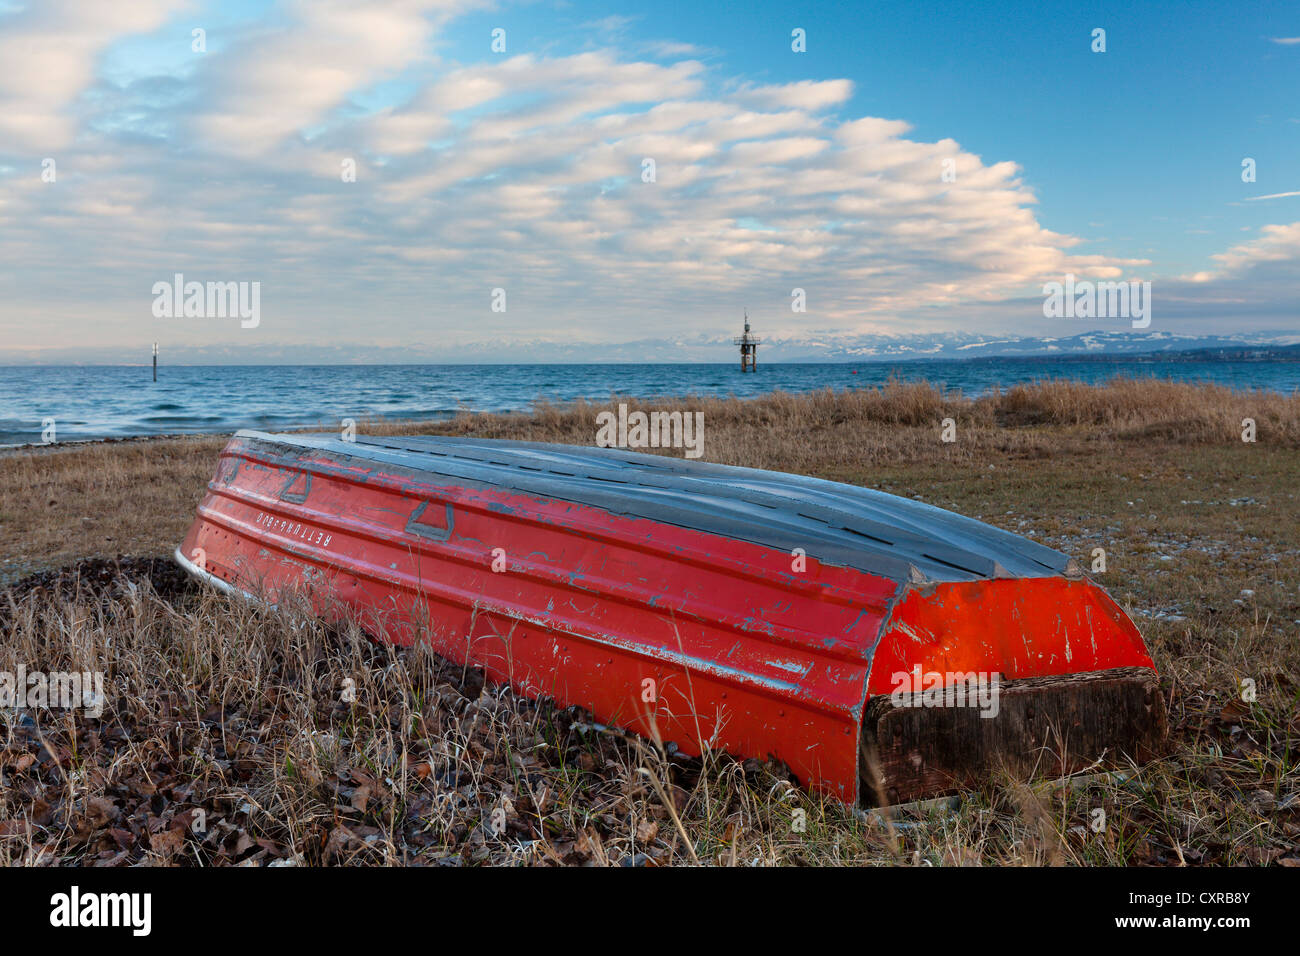 Red lifeboat lying upside down on the shore of Lake Constance near Konstanz, Constance, Baden-Wuerttemberg, PublicGround - Stock Image